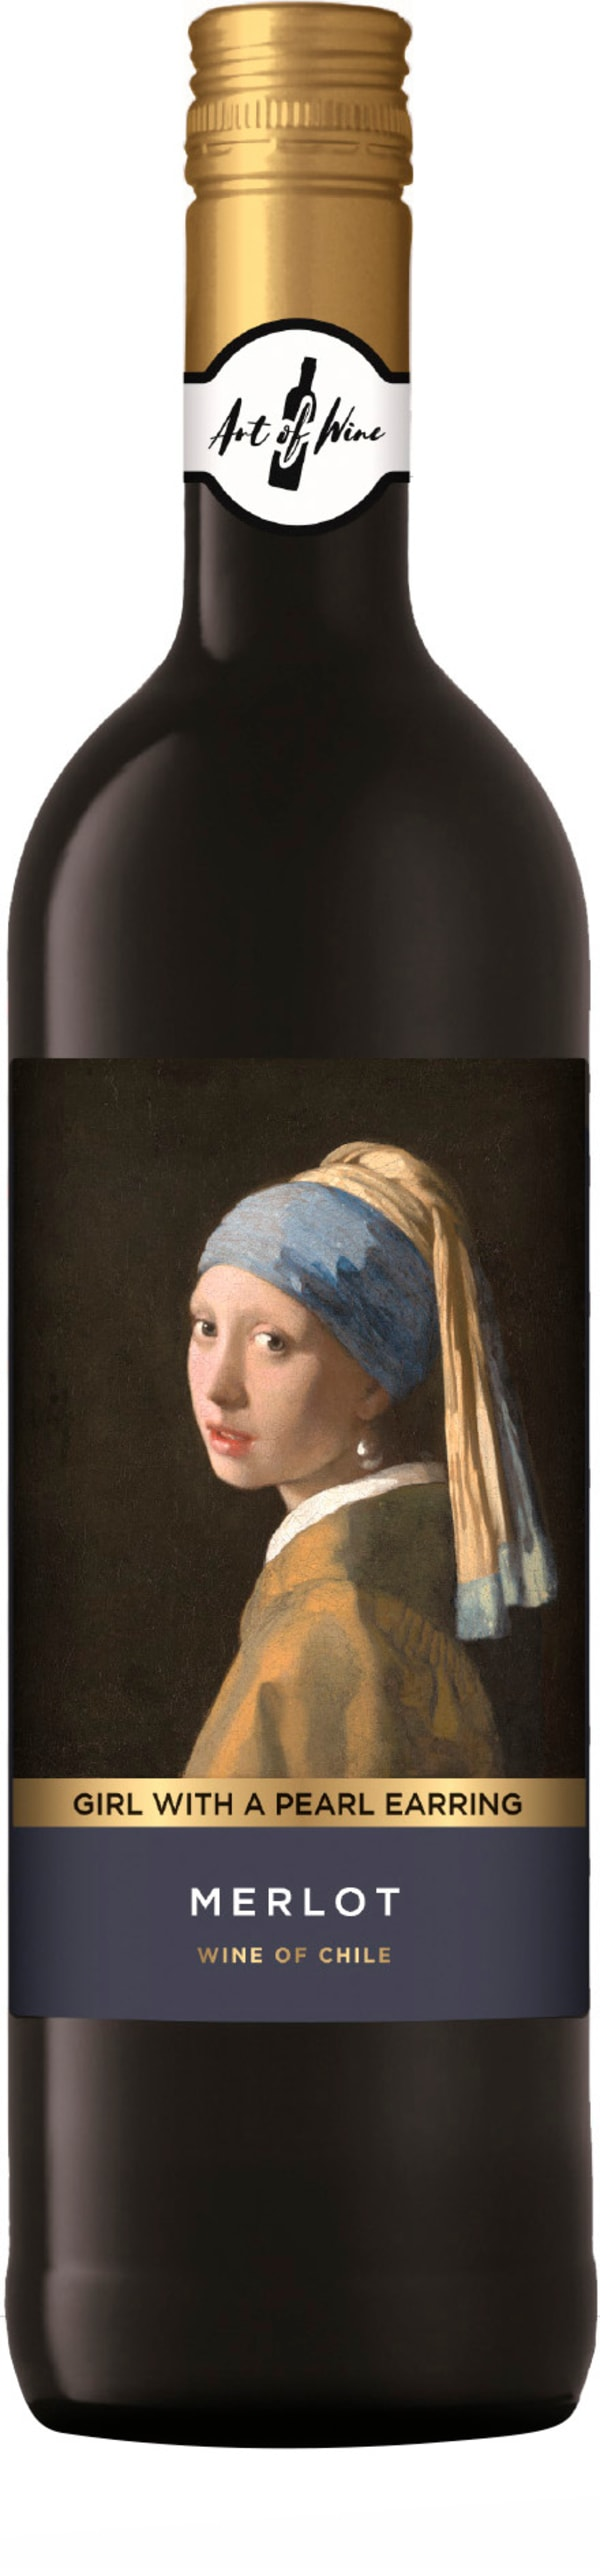 Girl With A Pearl Earring Merlot 2019